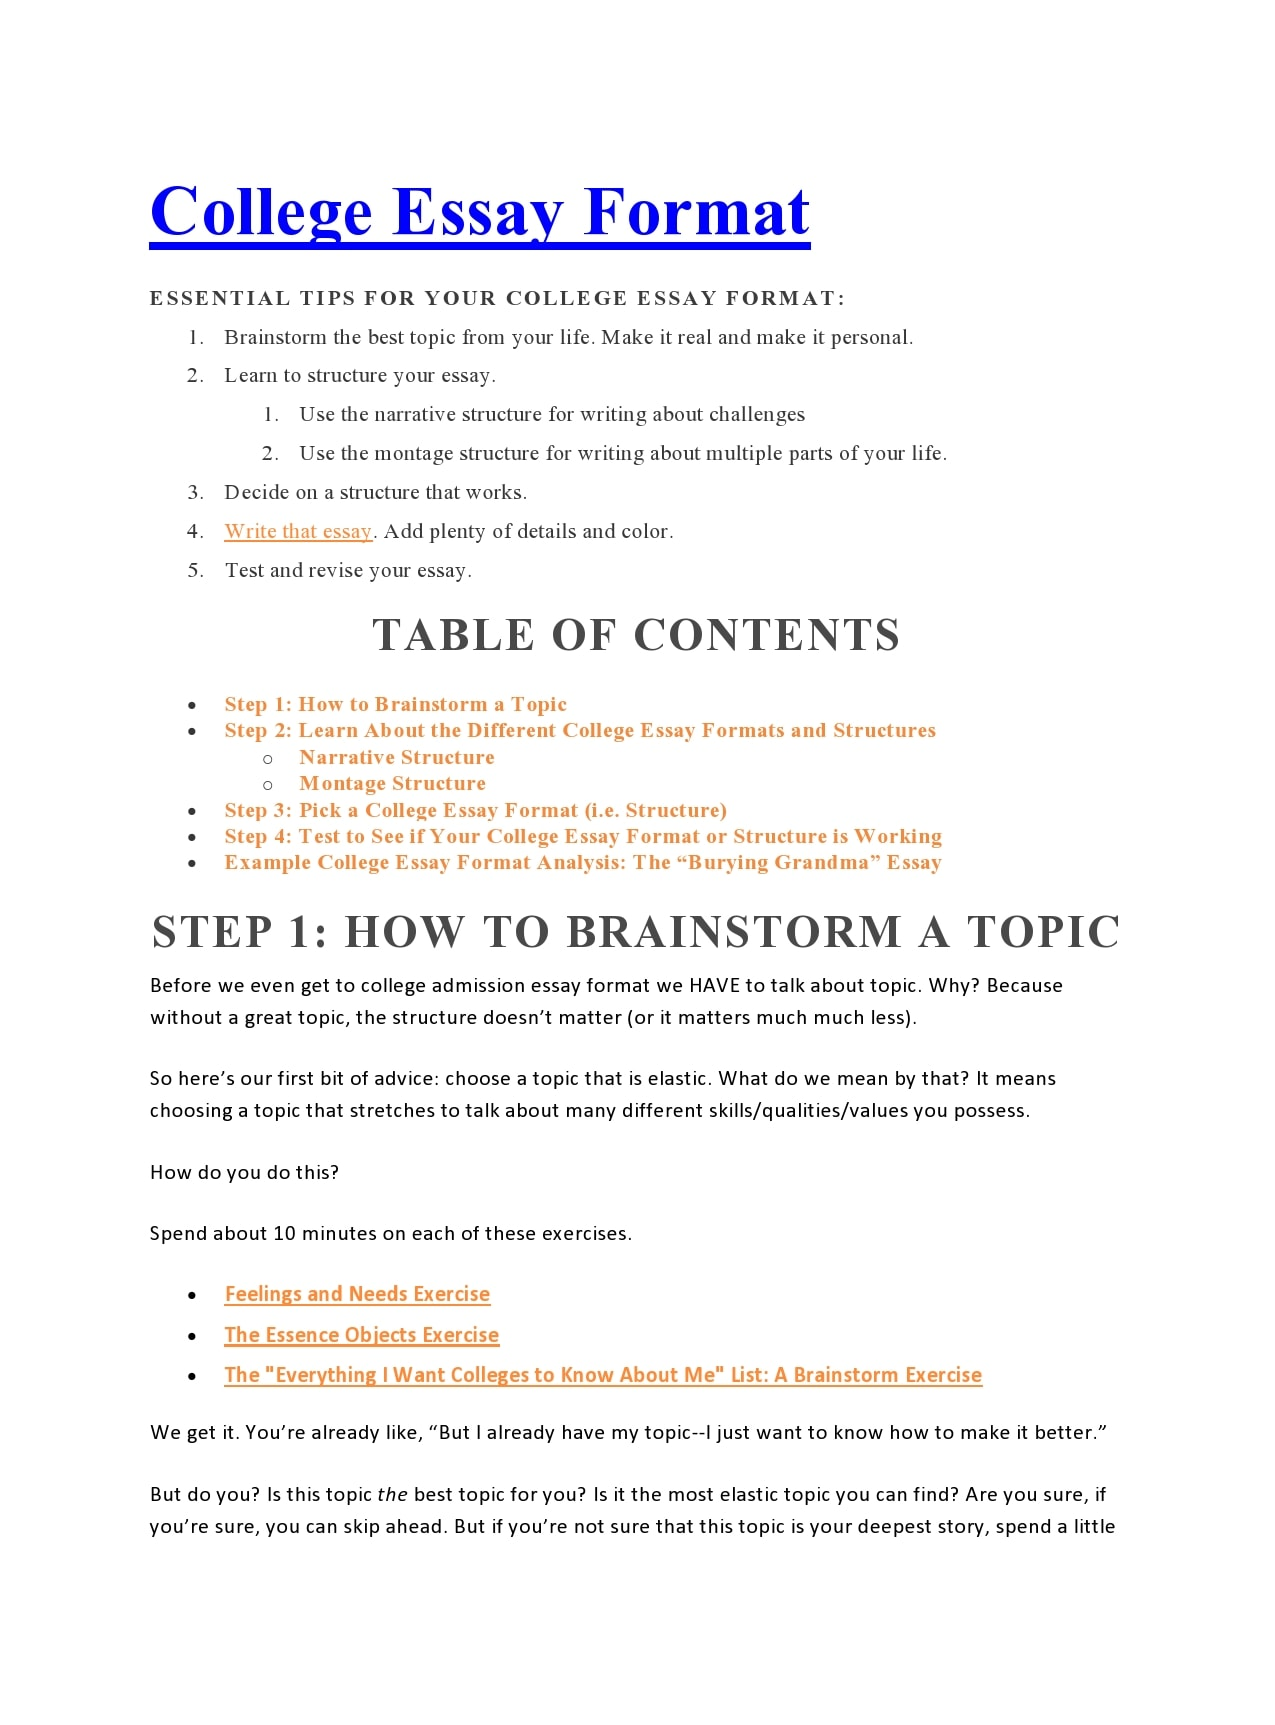 College Paper Template from templatearchive.com